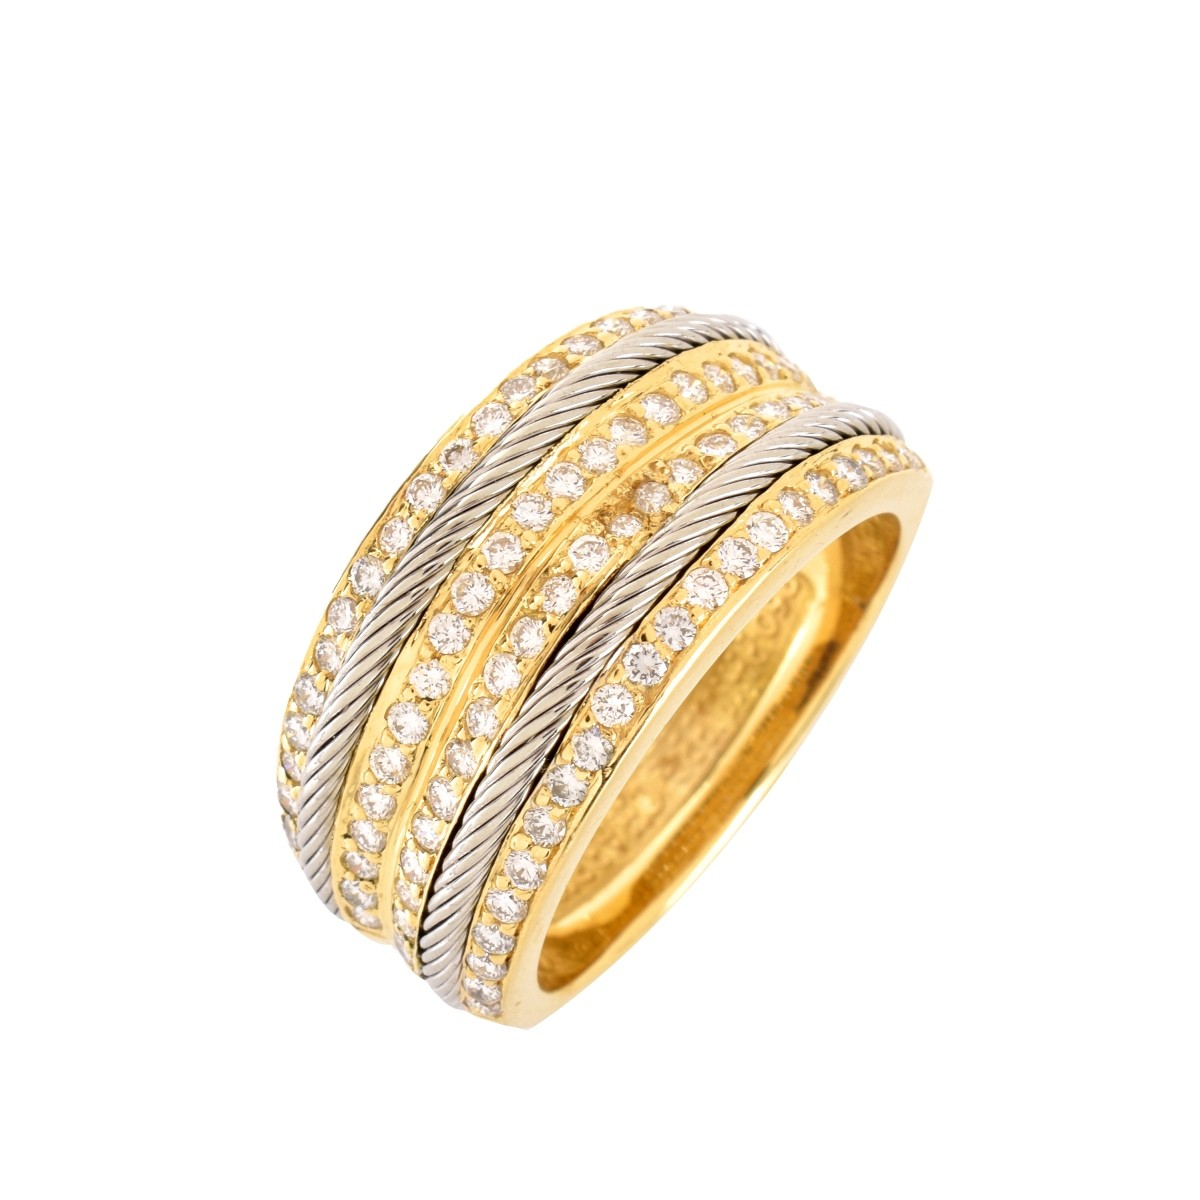 Philippe Charriol Diamond and 18K Men's Ring